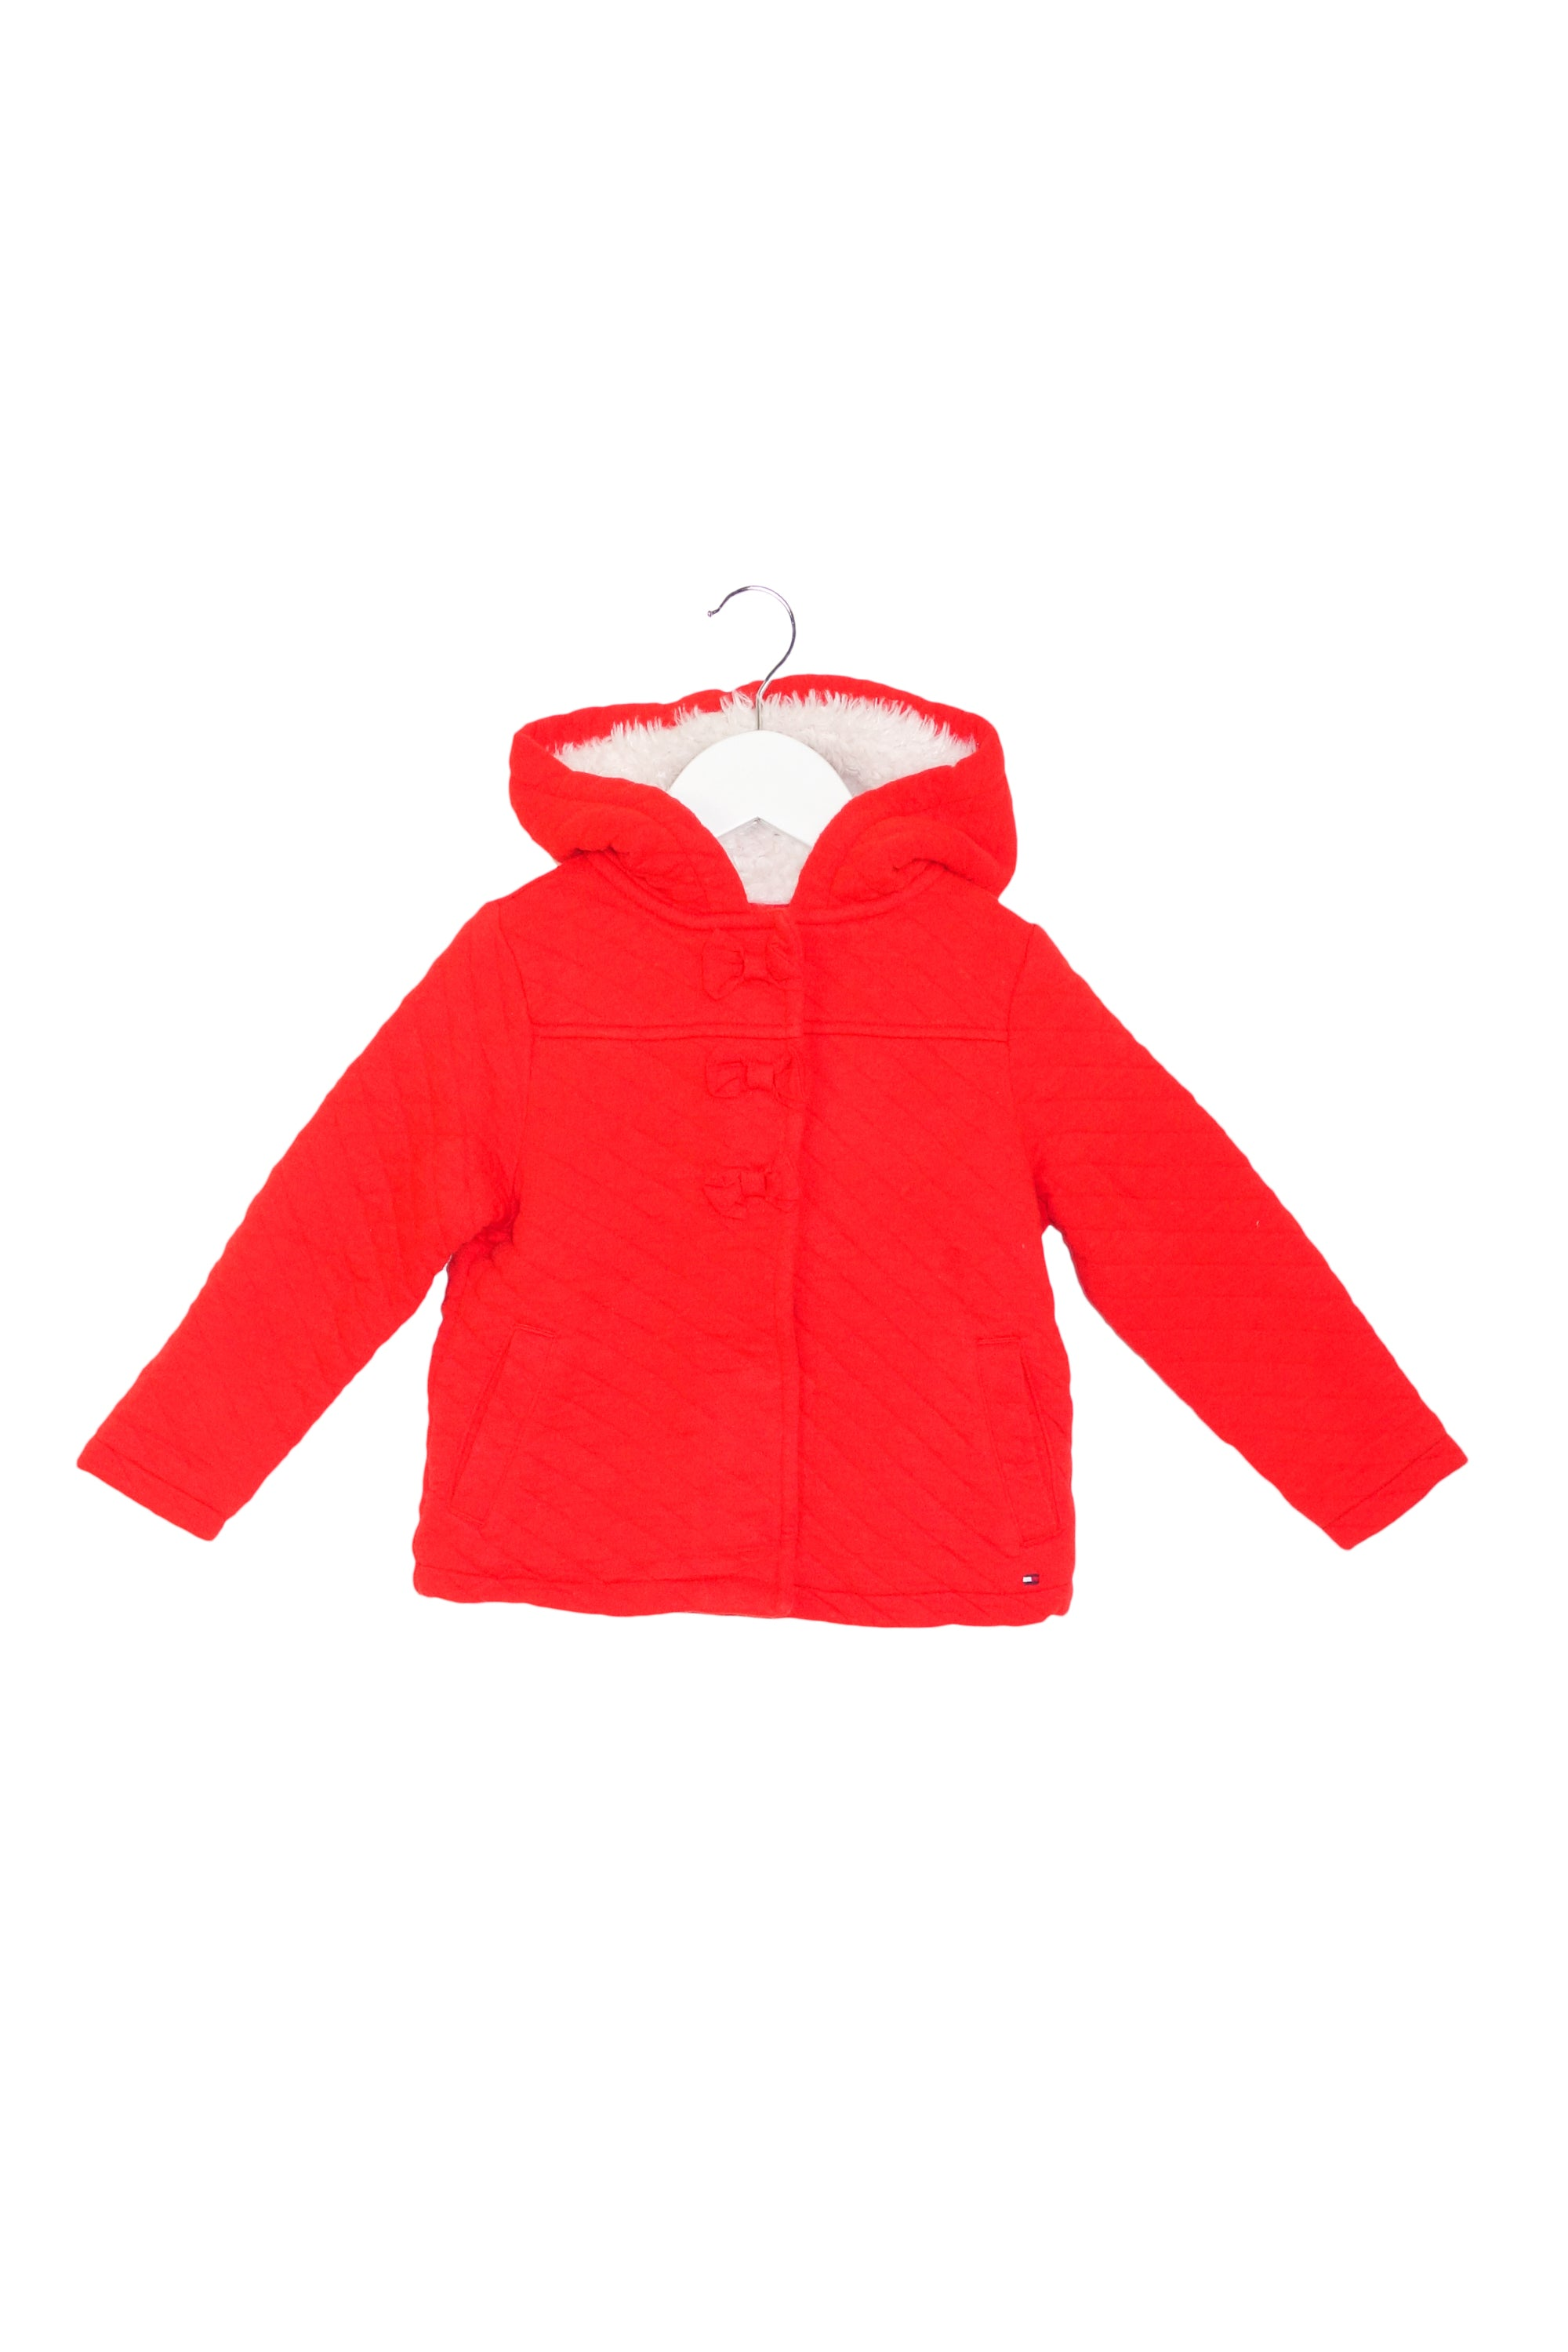 10013576 Tommy Hilfiger Kids ~ Coat 3T at Retykle